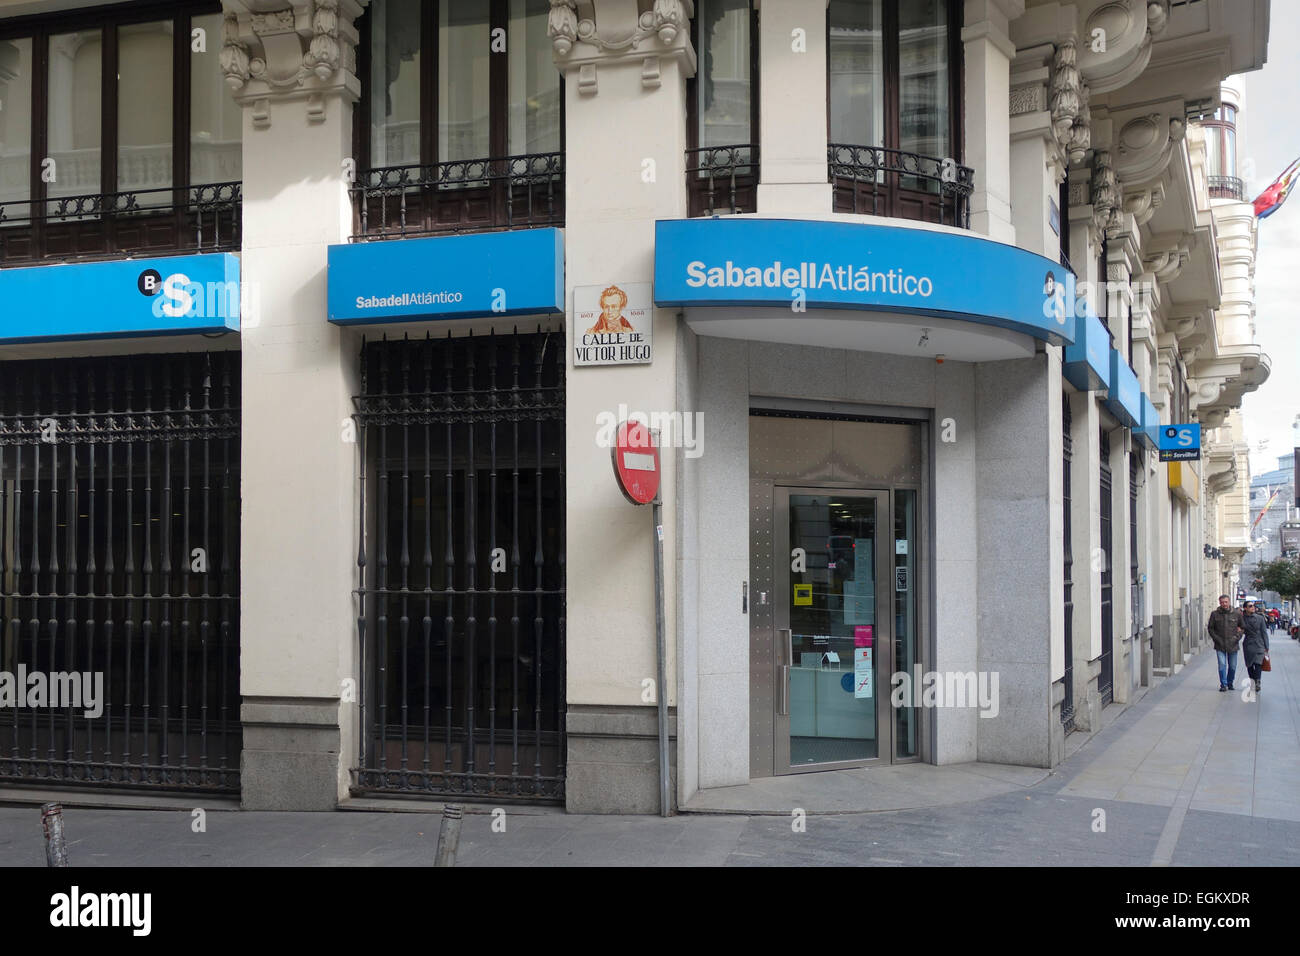 Sabadell Atlantico Bank Filiale Eingang, Gran Via, Madrid, Spanien Stockbild